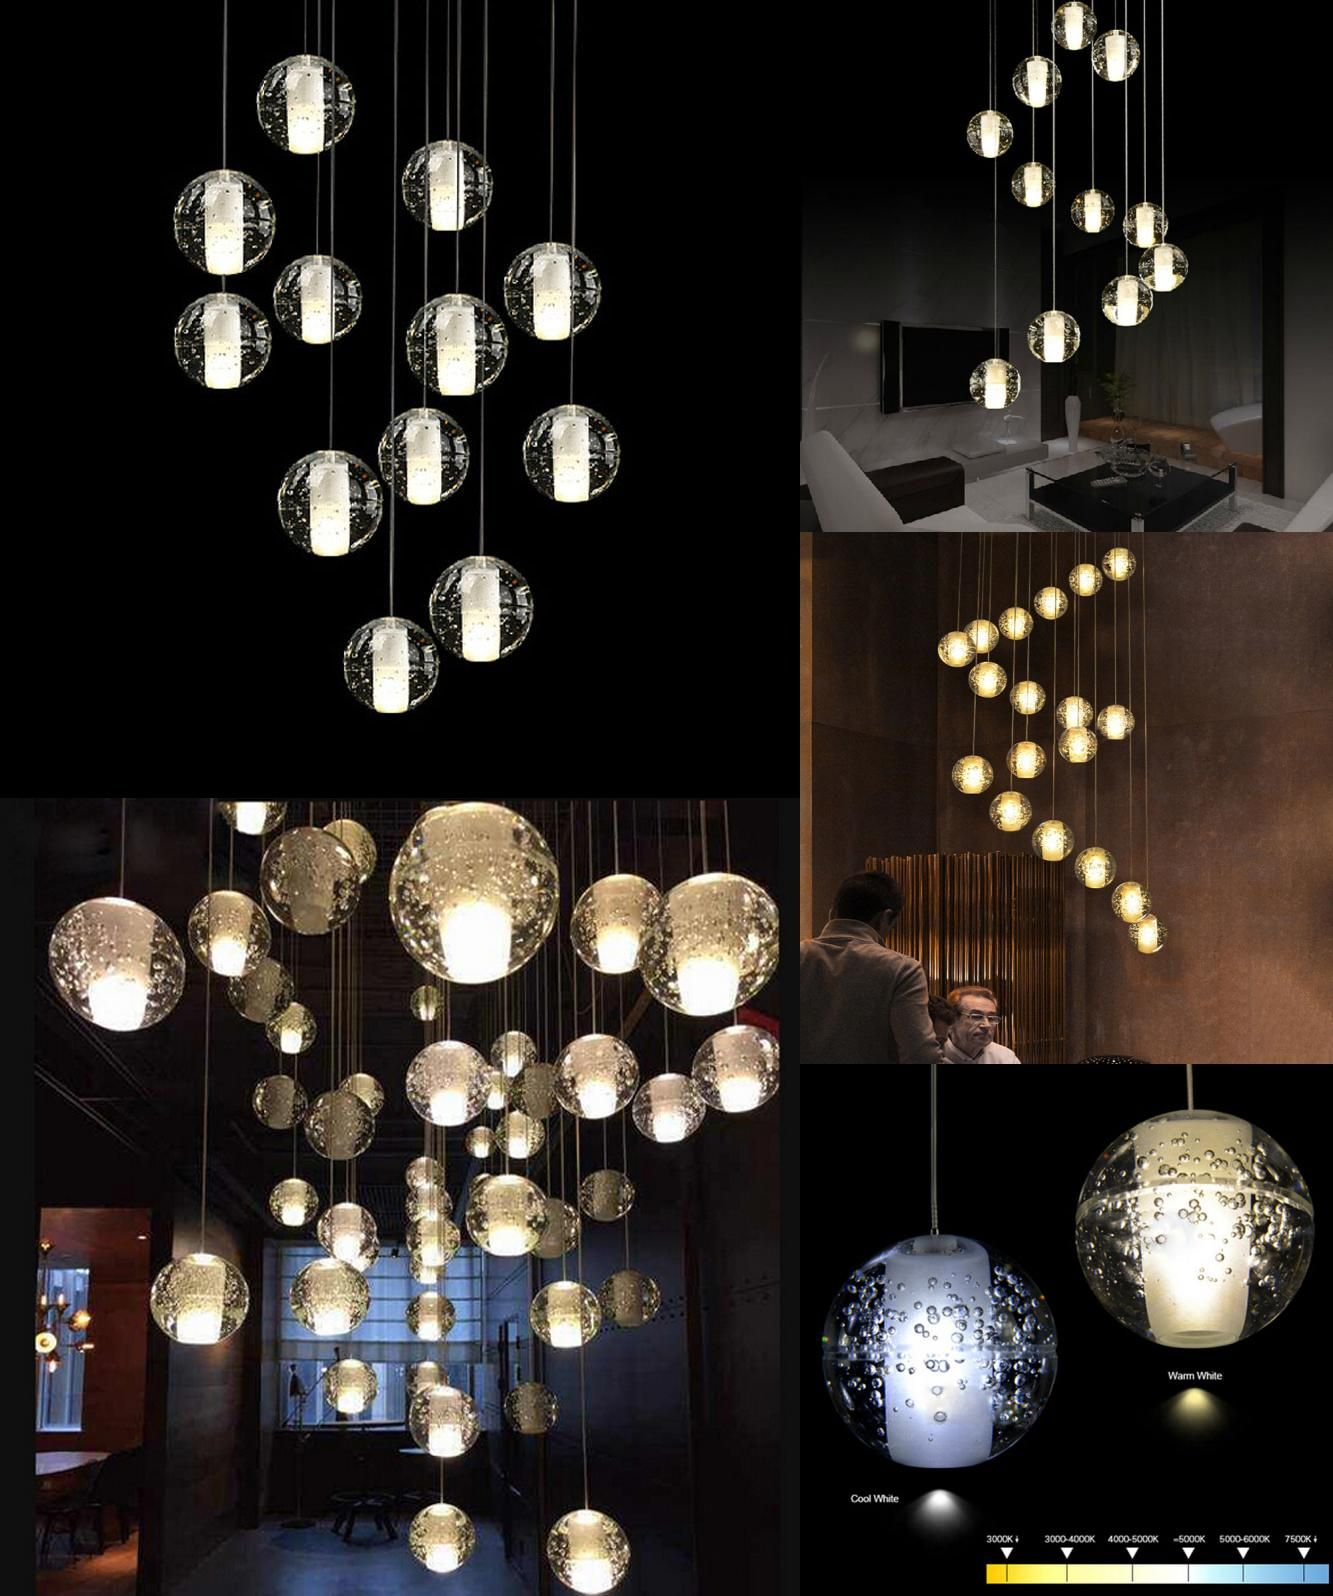 Visit to buy zx modern led crystal chandelier magic crystal ball visit to buy zx modern led crystal chandelier magic crystal ball hall lamp loft arubaitofo Gallery